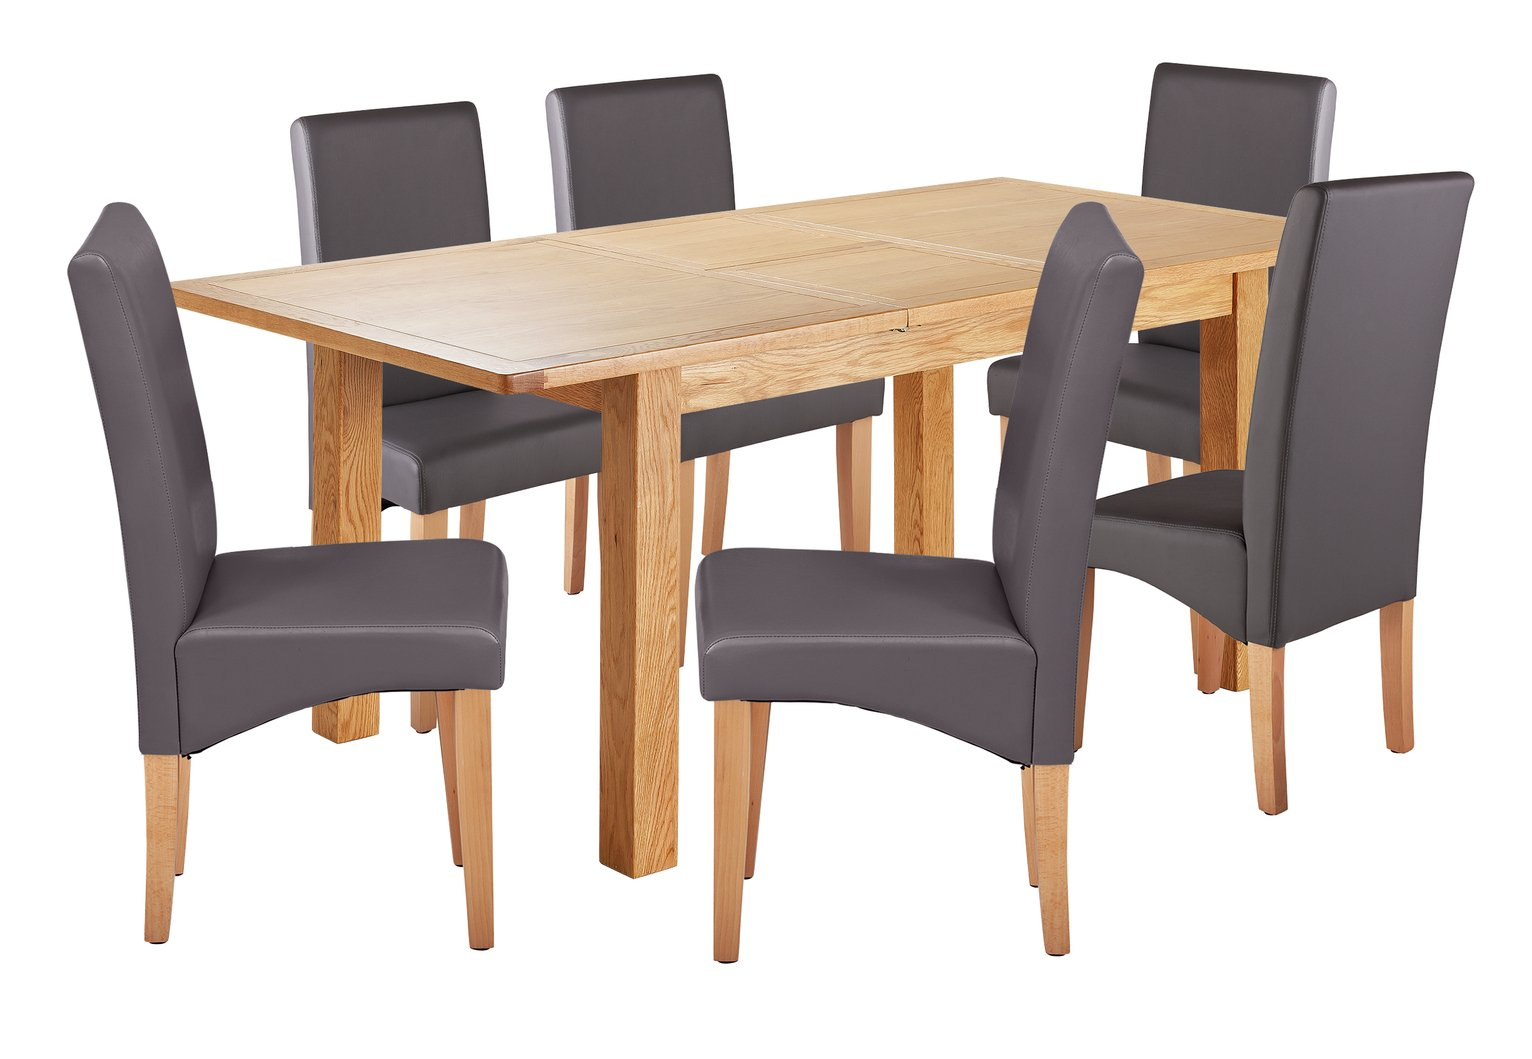 Argos Home Ashwell Extendable XL Table & 6 Chairs - Charcoal